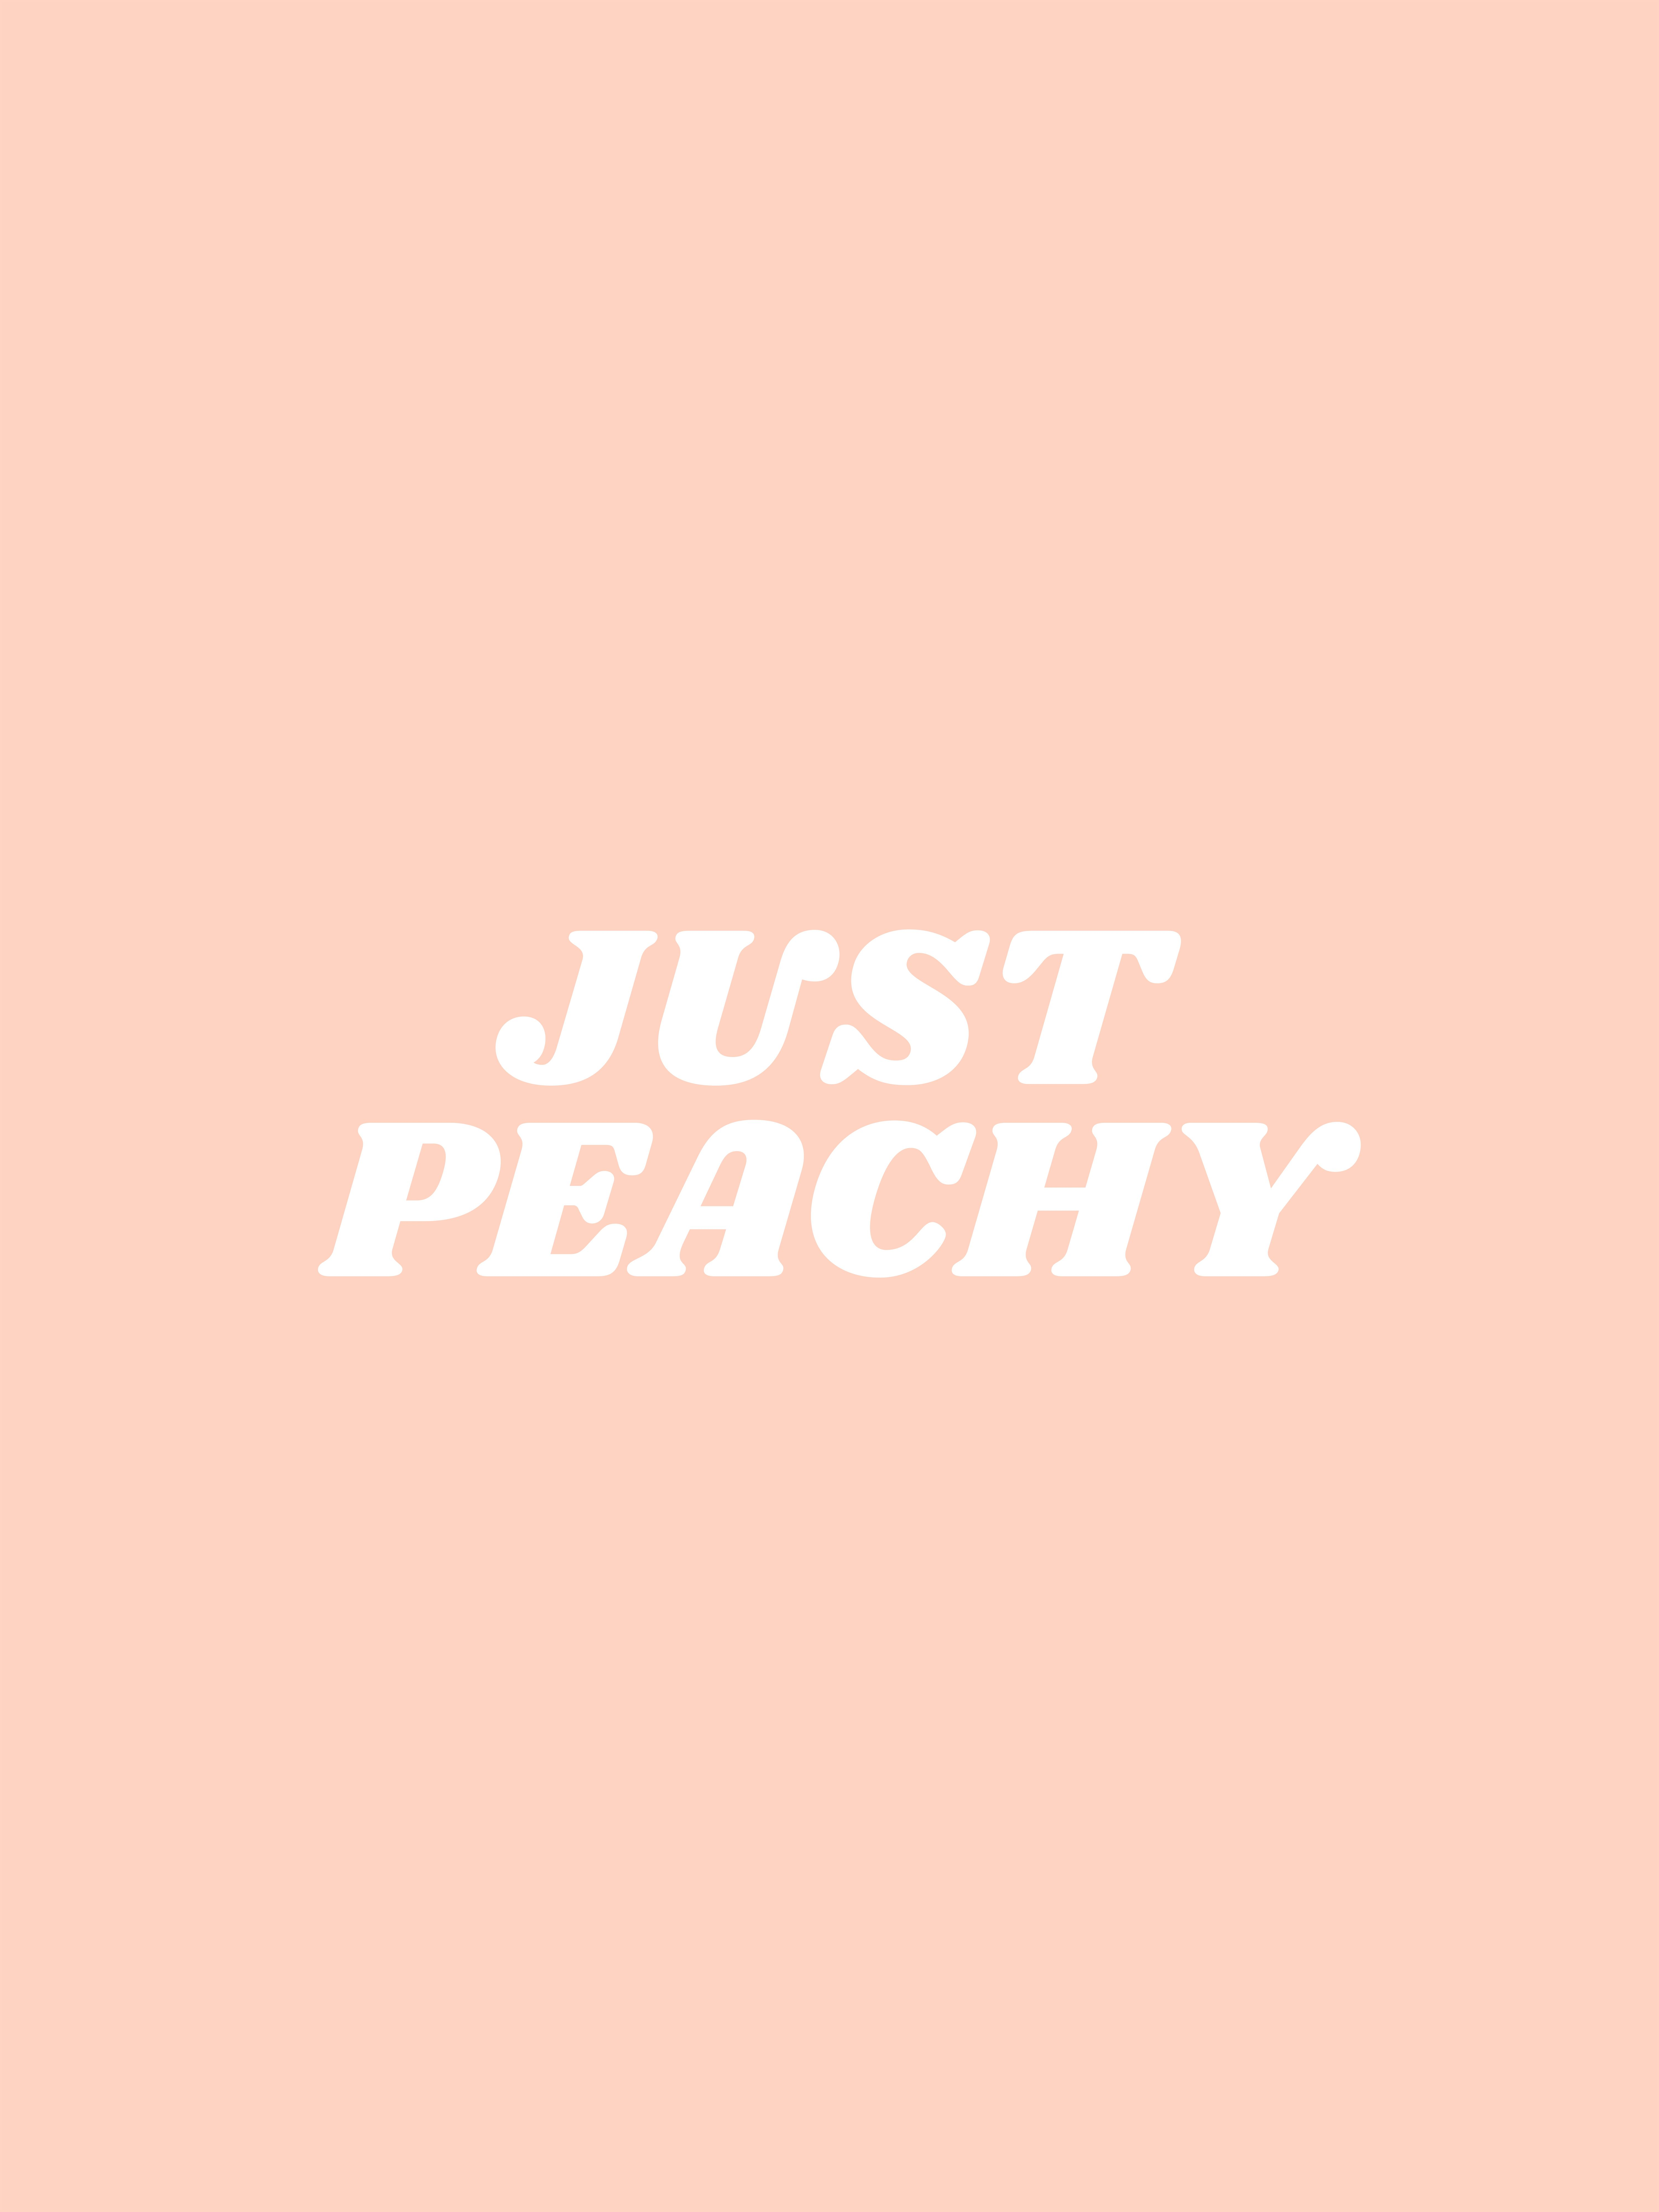 Just Peachy Wall Collage Just Peachy Art Collage Wall